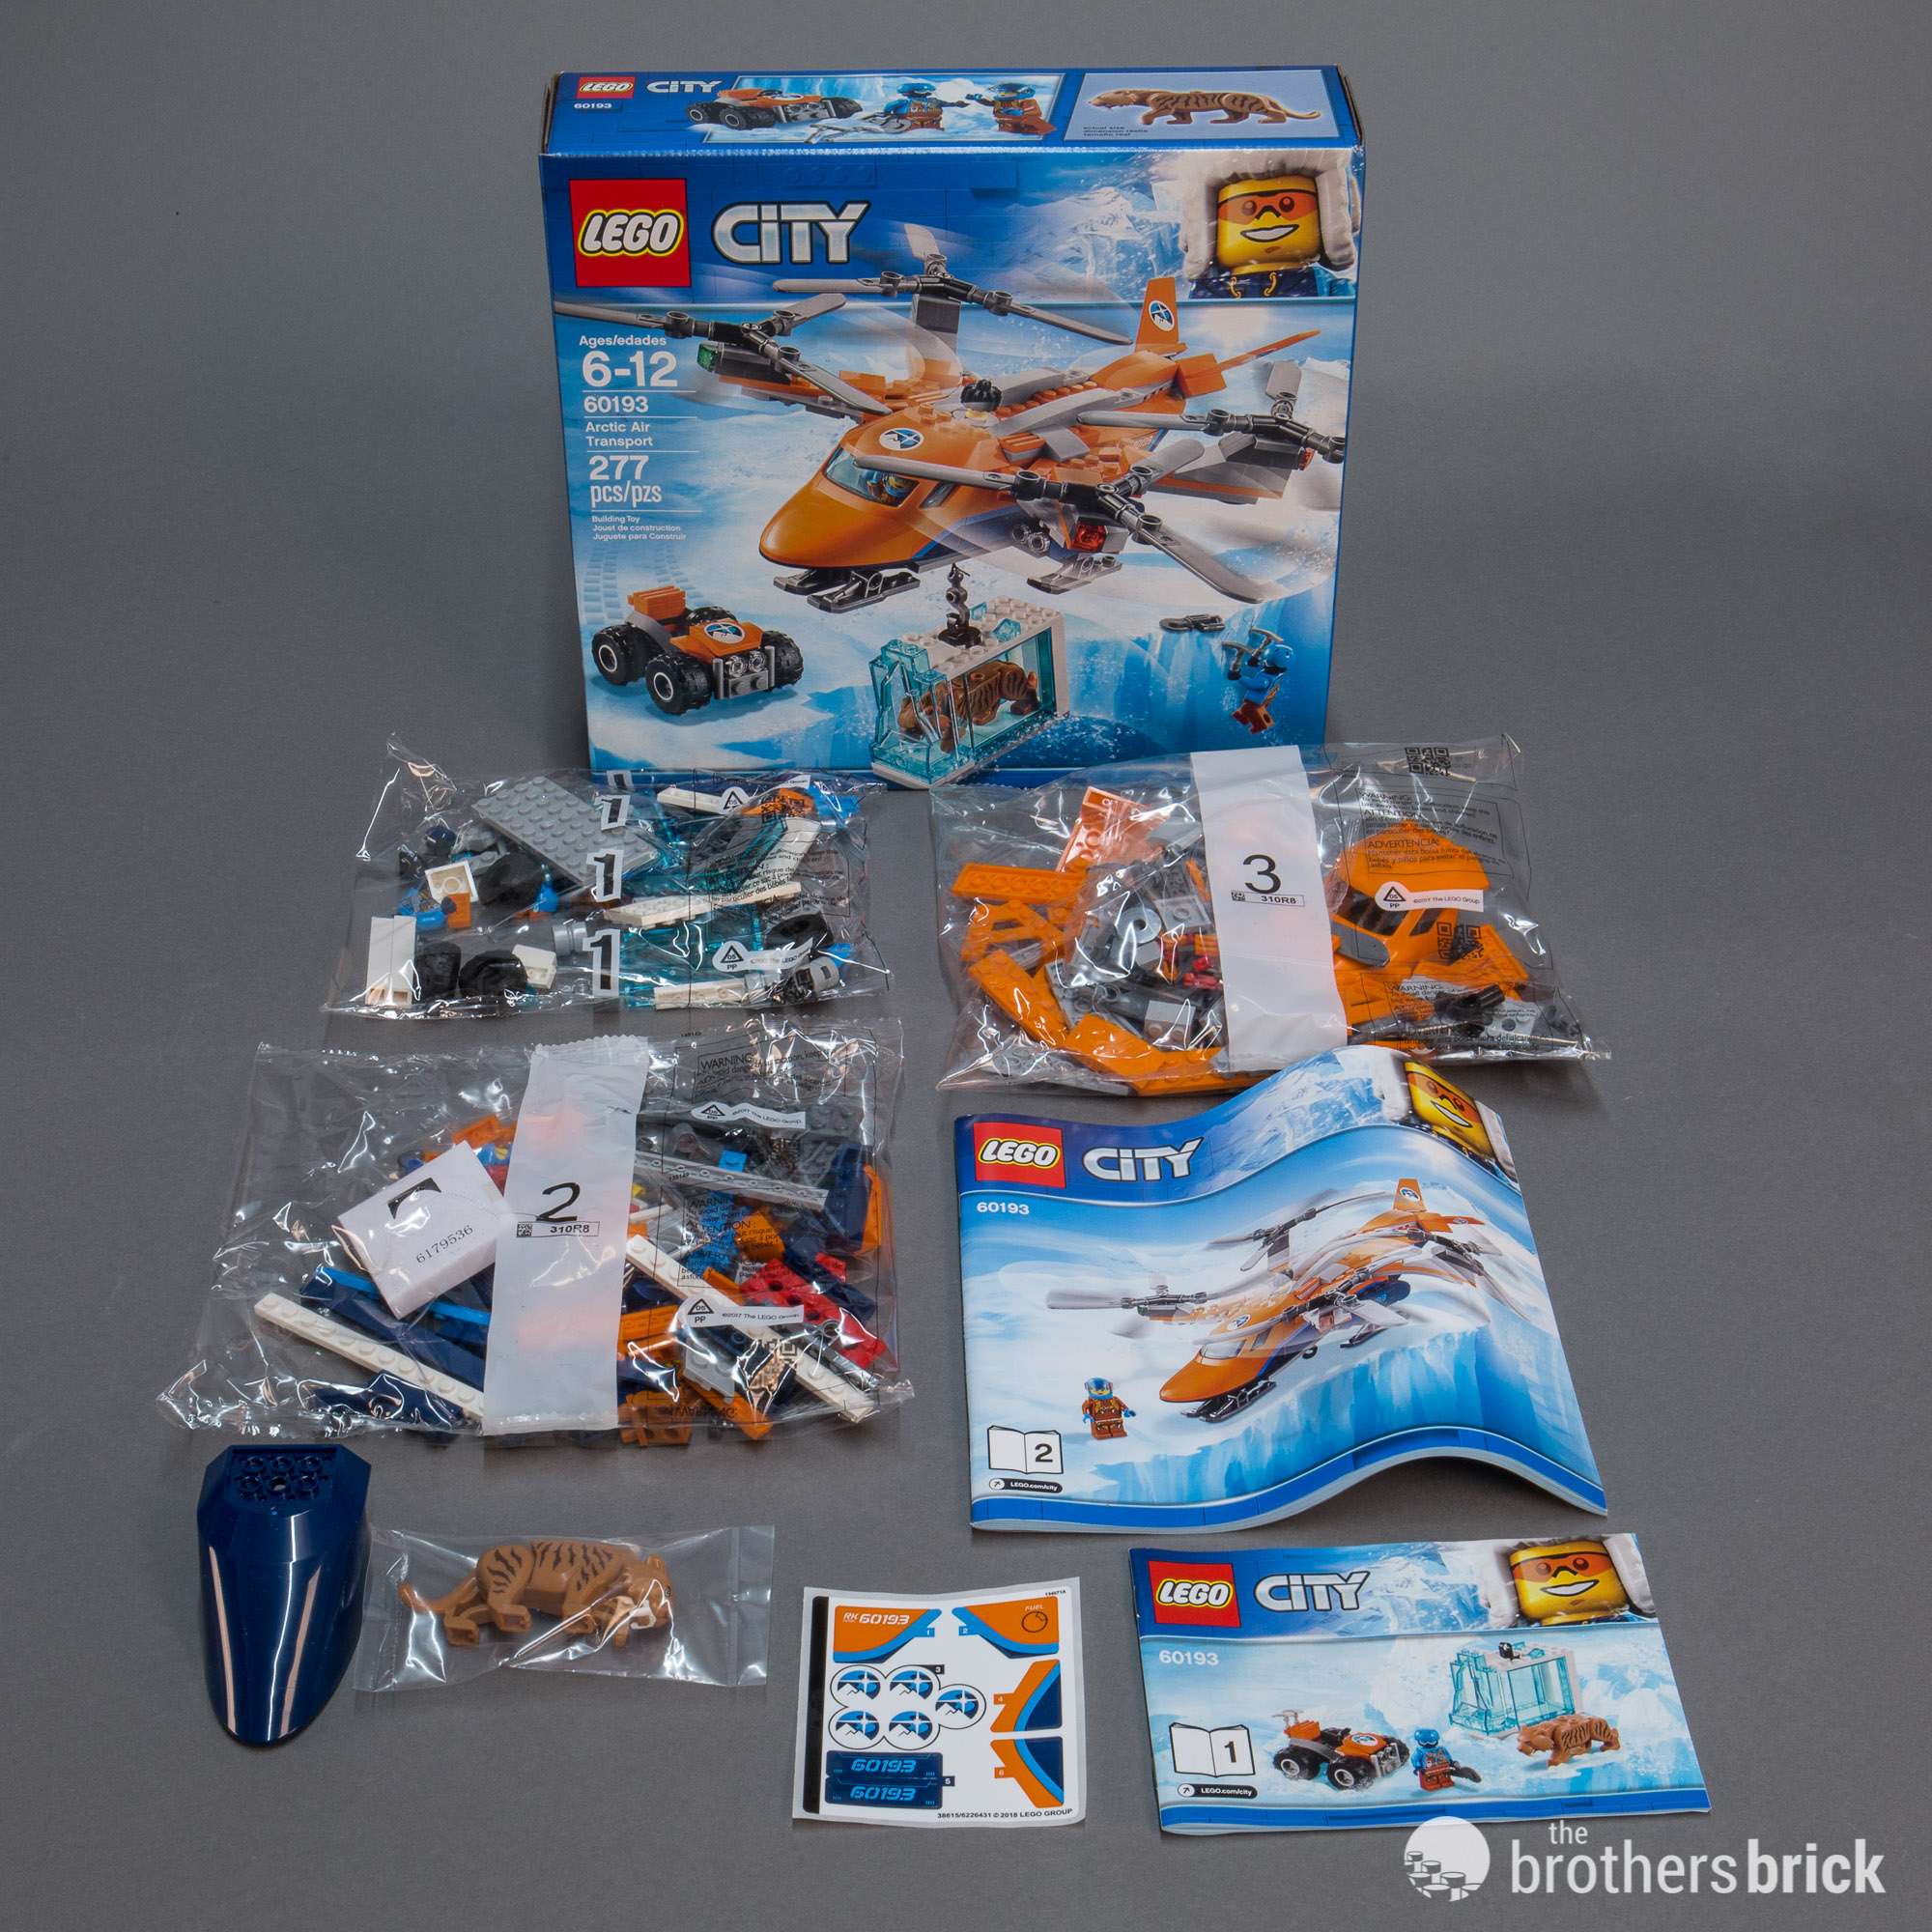 Saber-toothed cats join the hunt in LEGO City Arctic 60193 Arctic